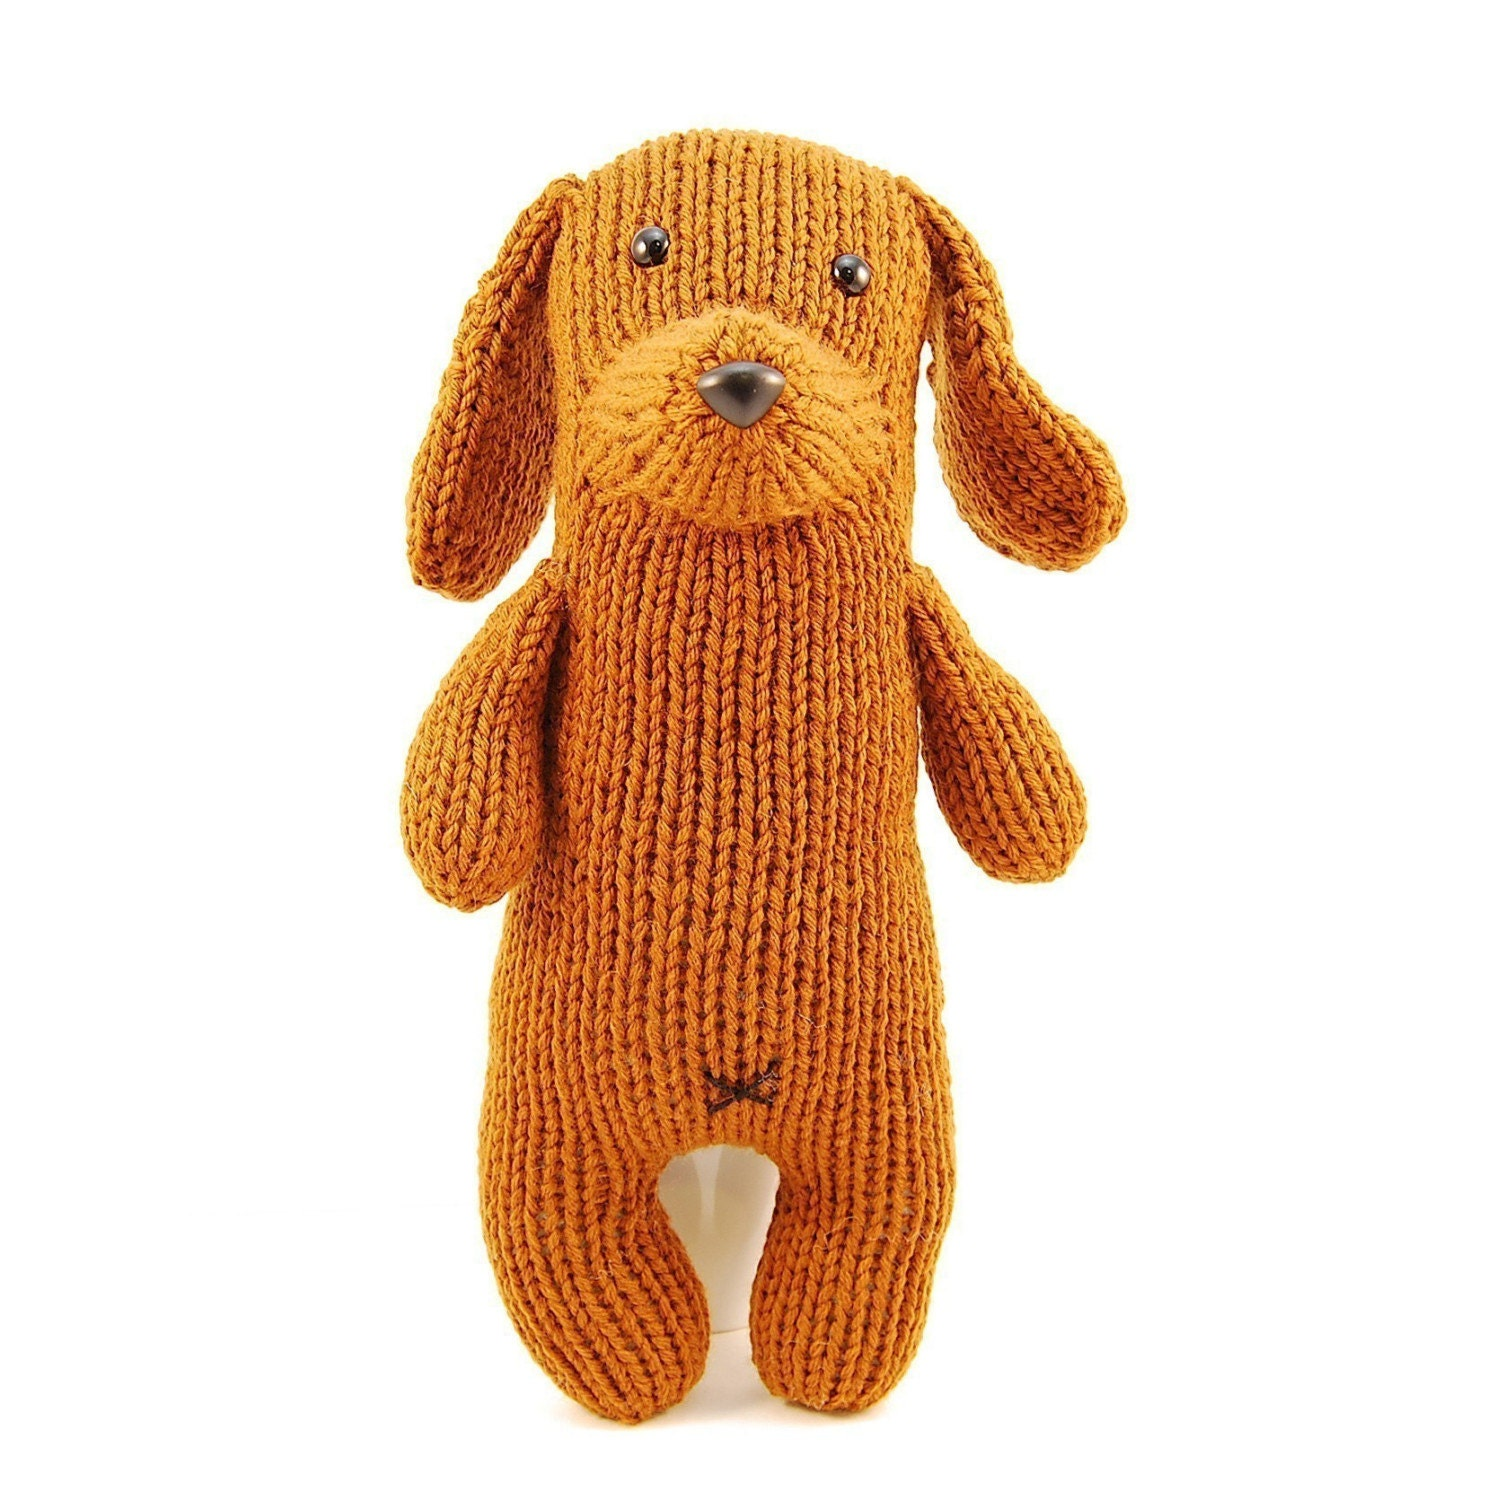 Knitted Dachshund Pattern : Tofu the Gentle Dachshund Knitting Pattern Pdf by dangercrafts